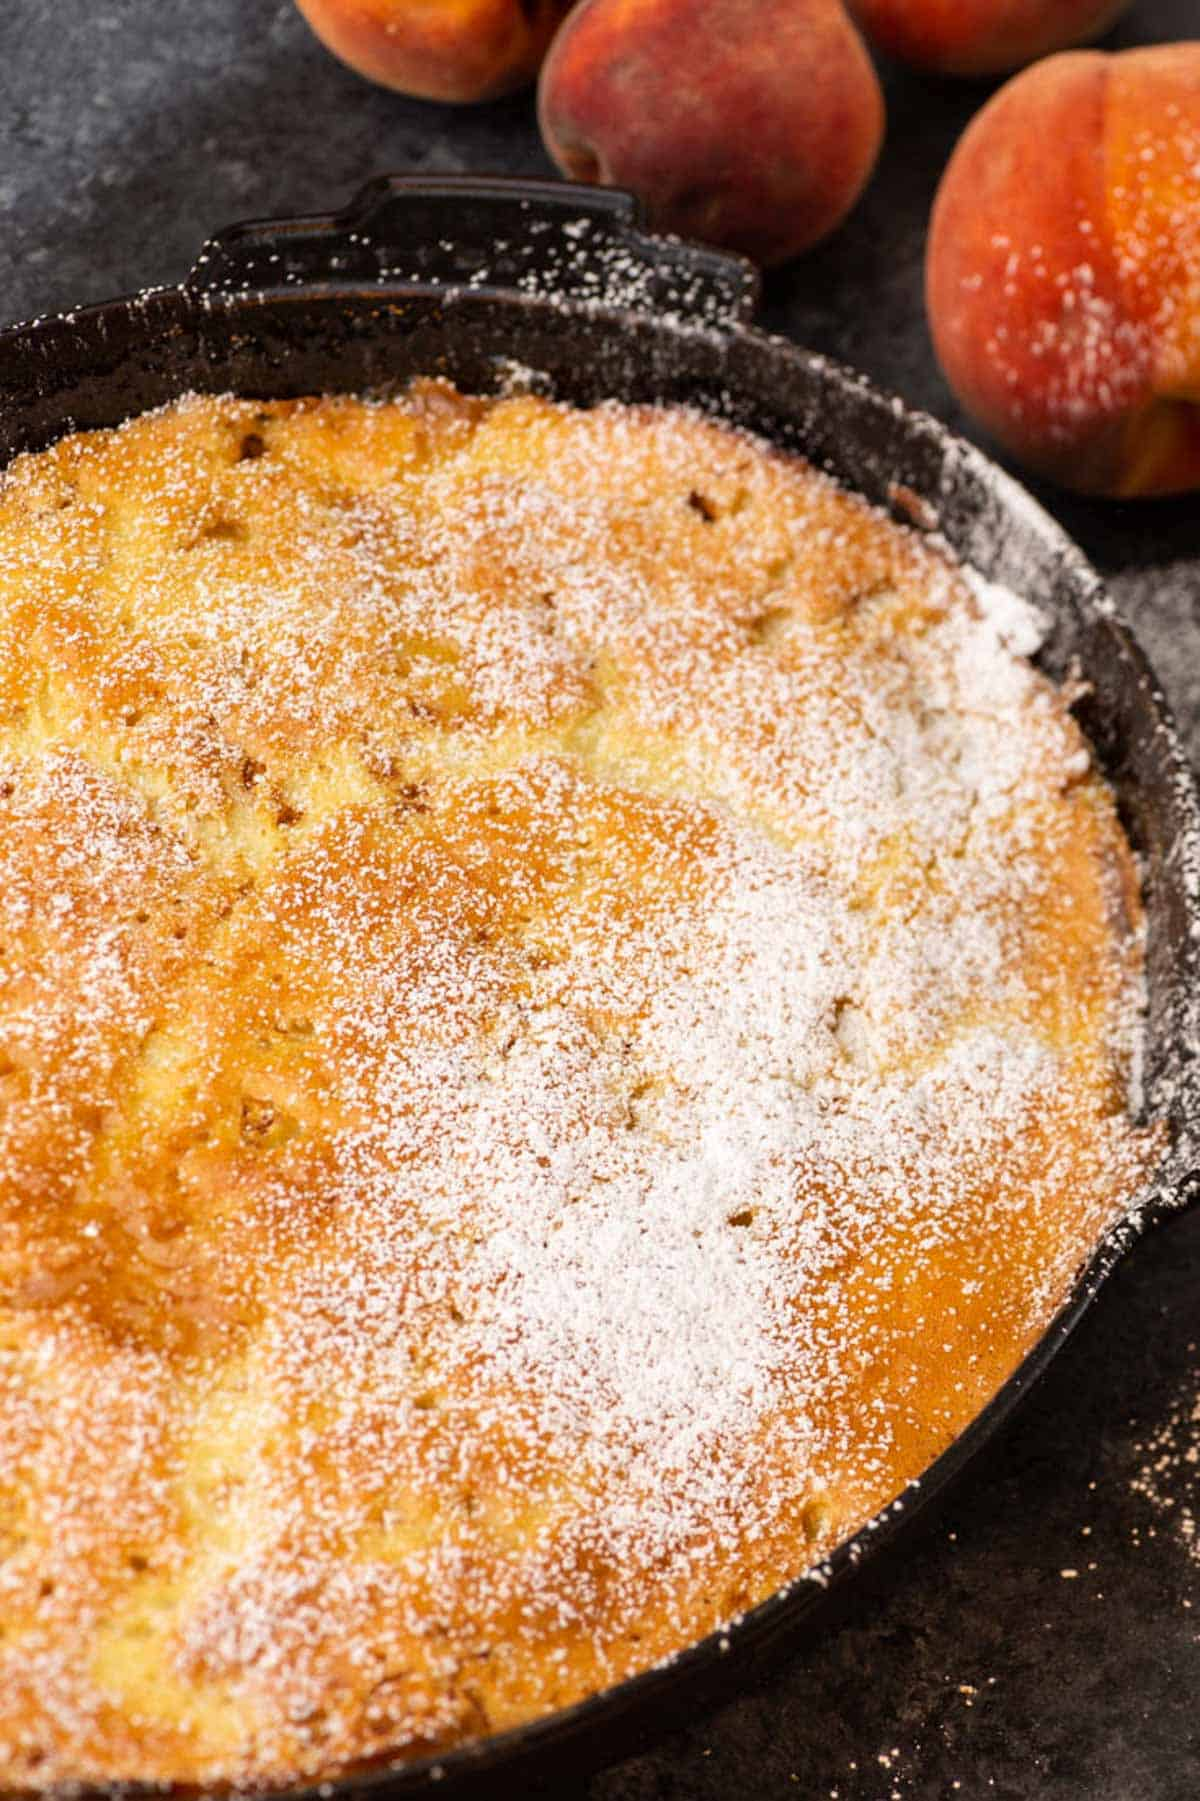 A baked peach pancake with powdered sugar on top.